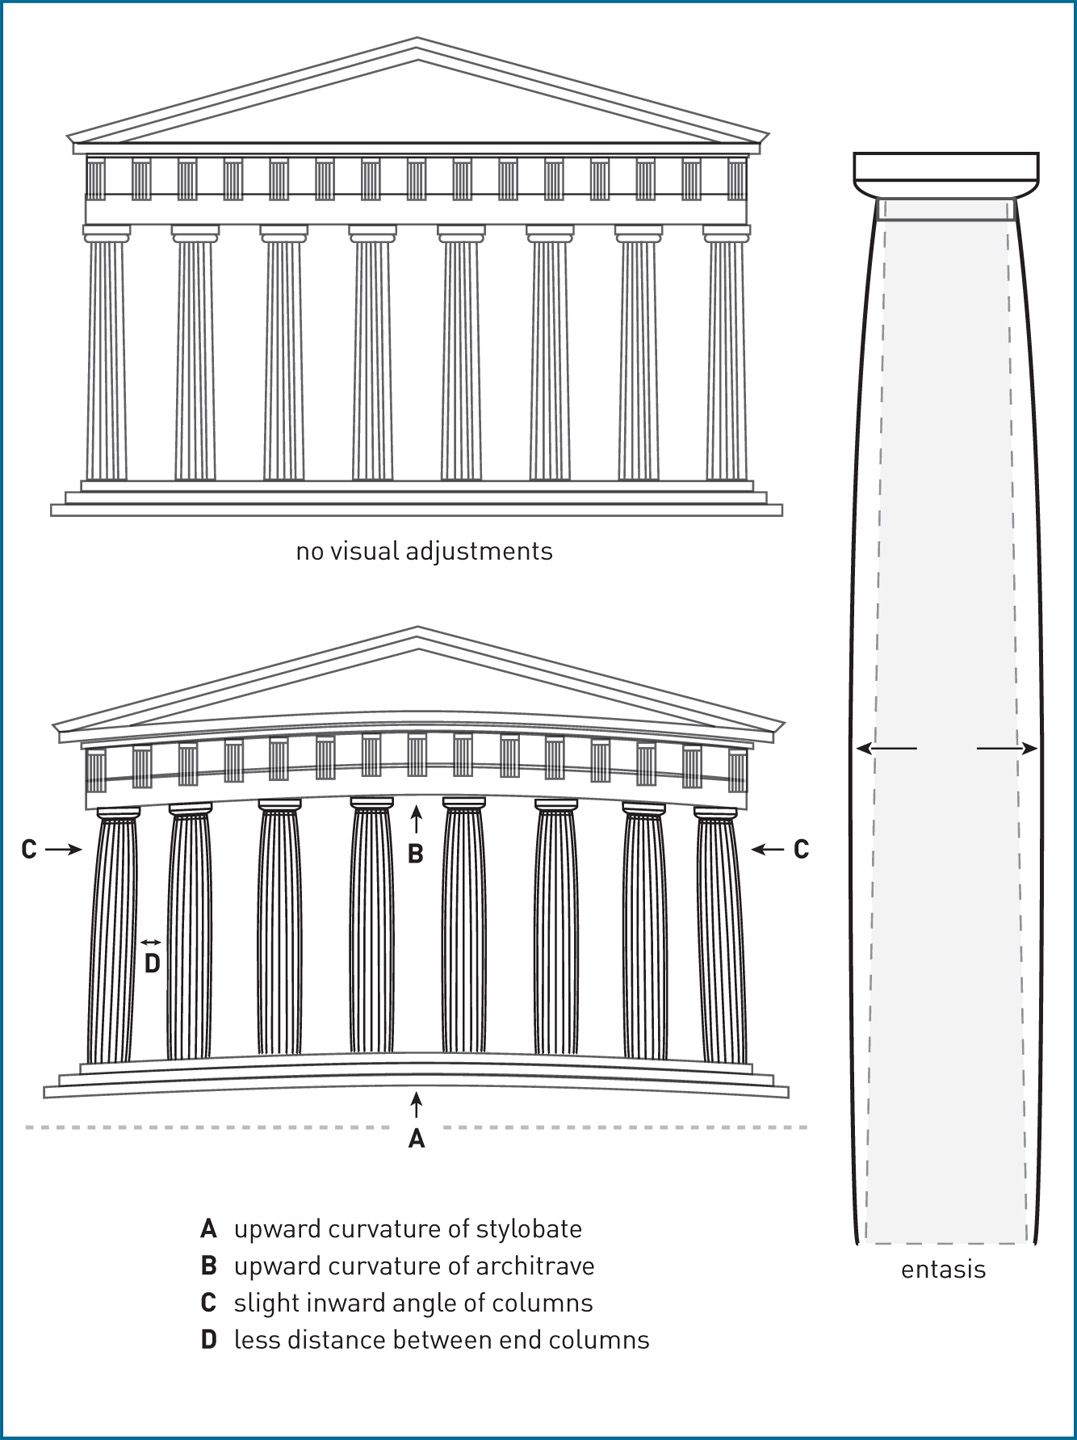 4 81b U2013d Diagram Showing The Optical Illusions Utilized In The Parthenon